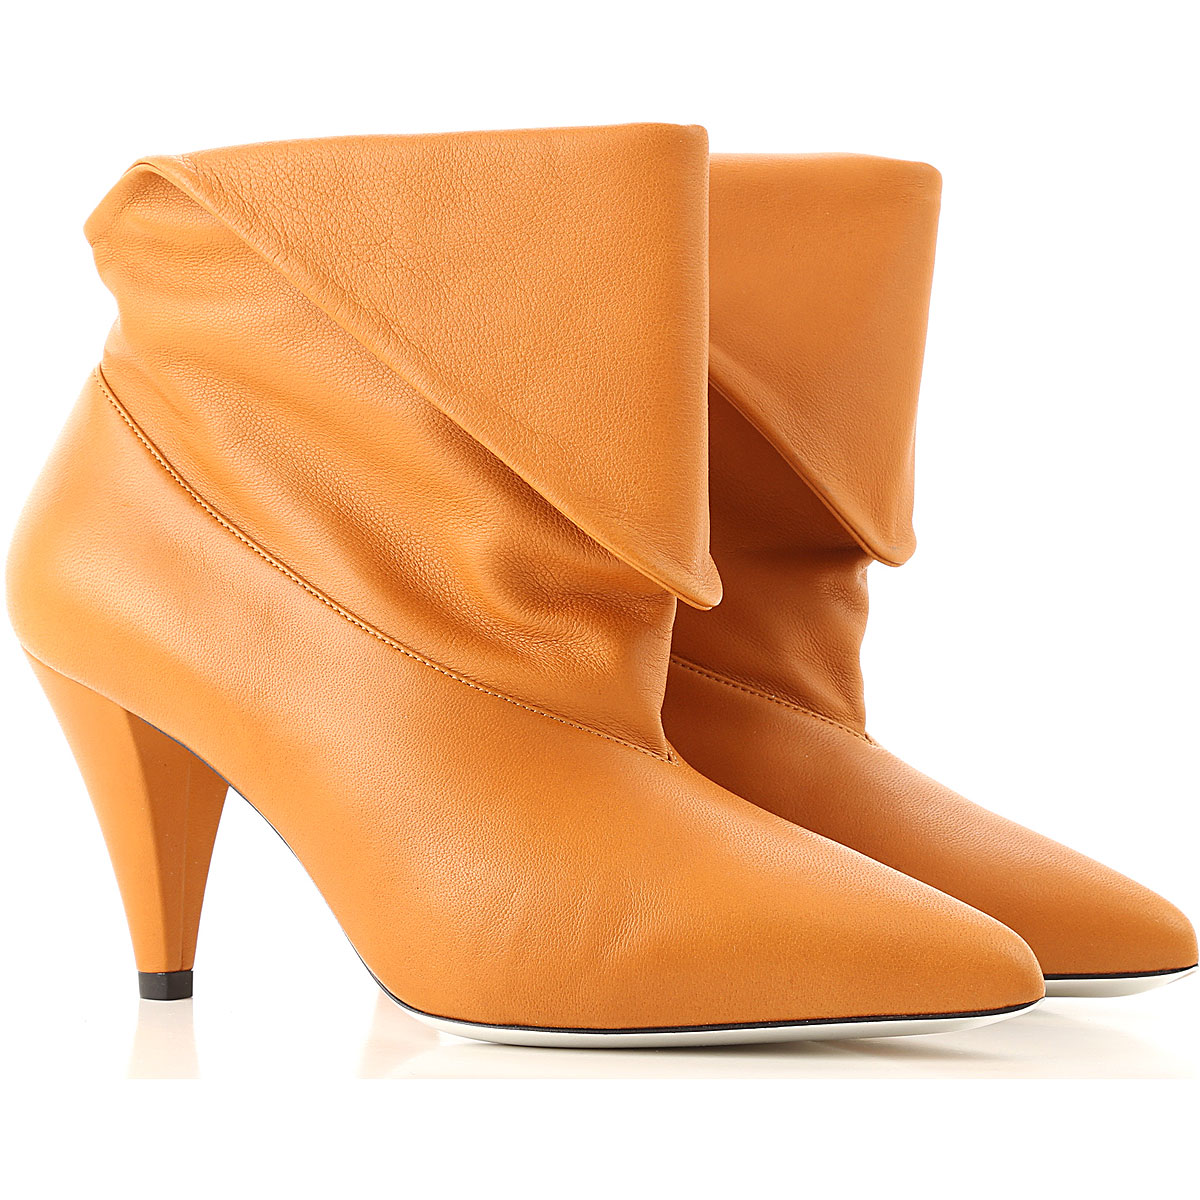 Givenchy Boots for Women, Booties On Sale in Outlet, Caramel, Leather, 2019, 6 7